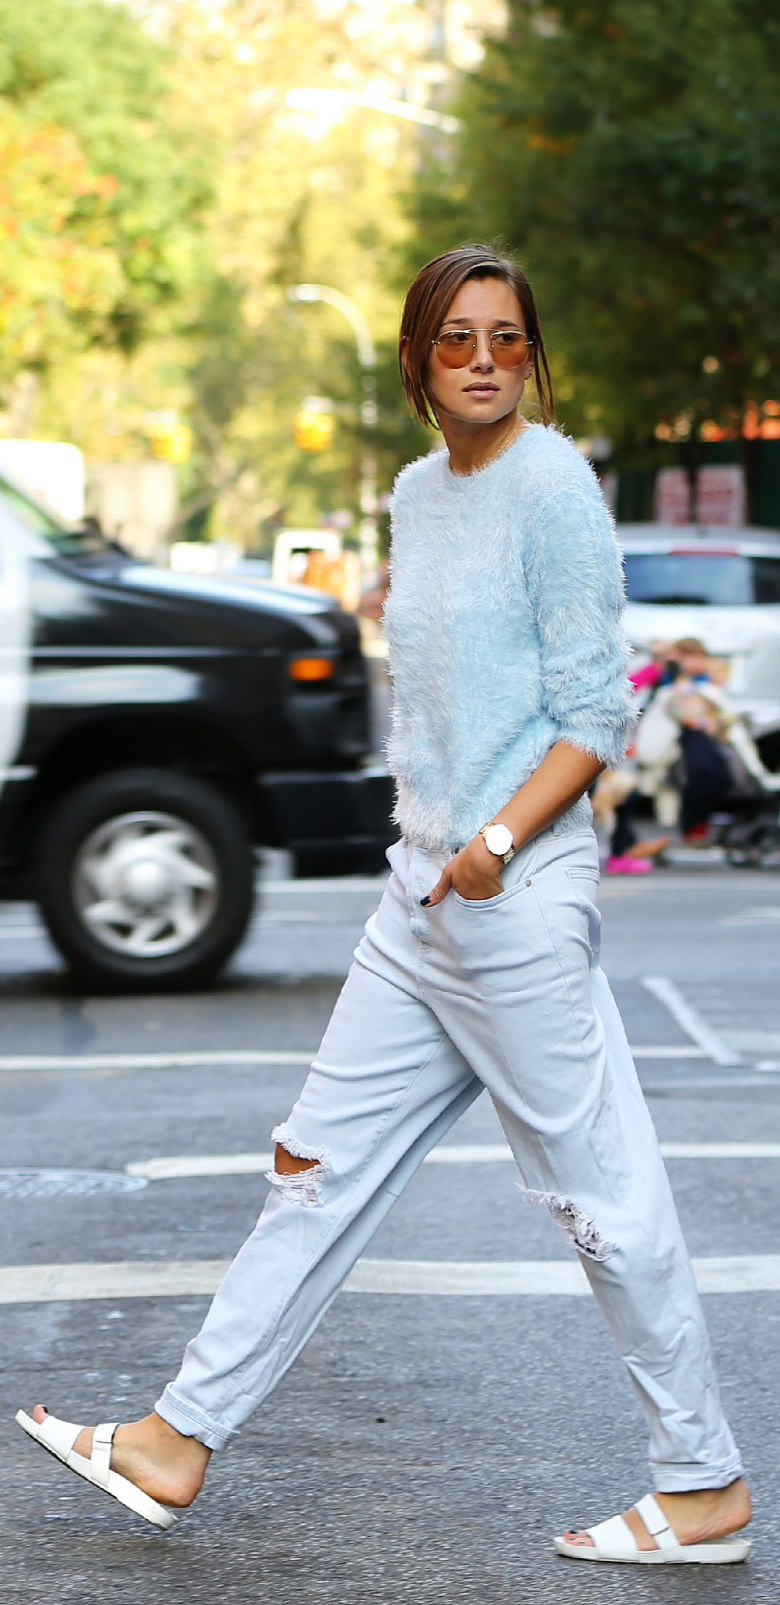 Danielle Bernstein is wearing a blue fluffy sweater from TopShop, ripped jeans and the sandals are from Vagabond